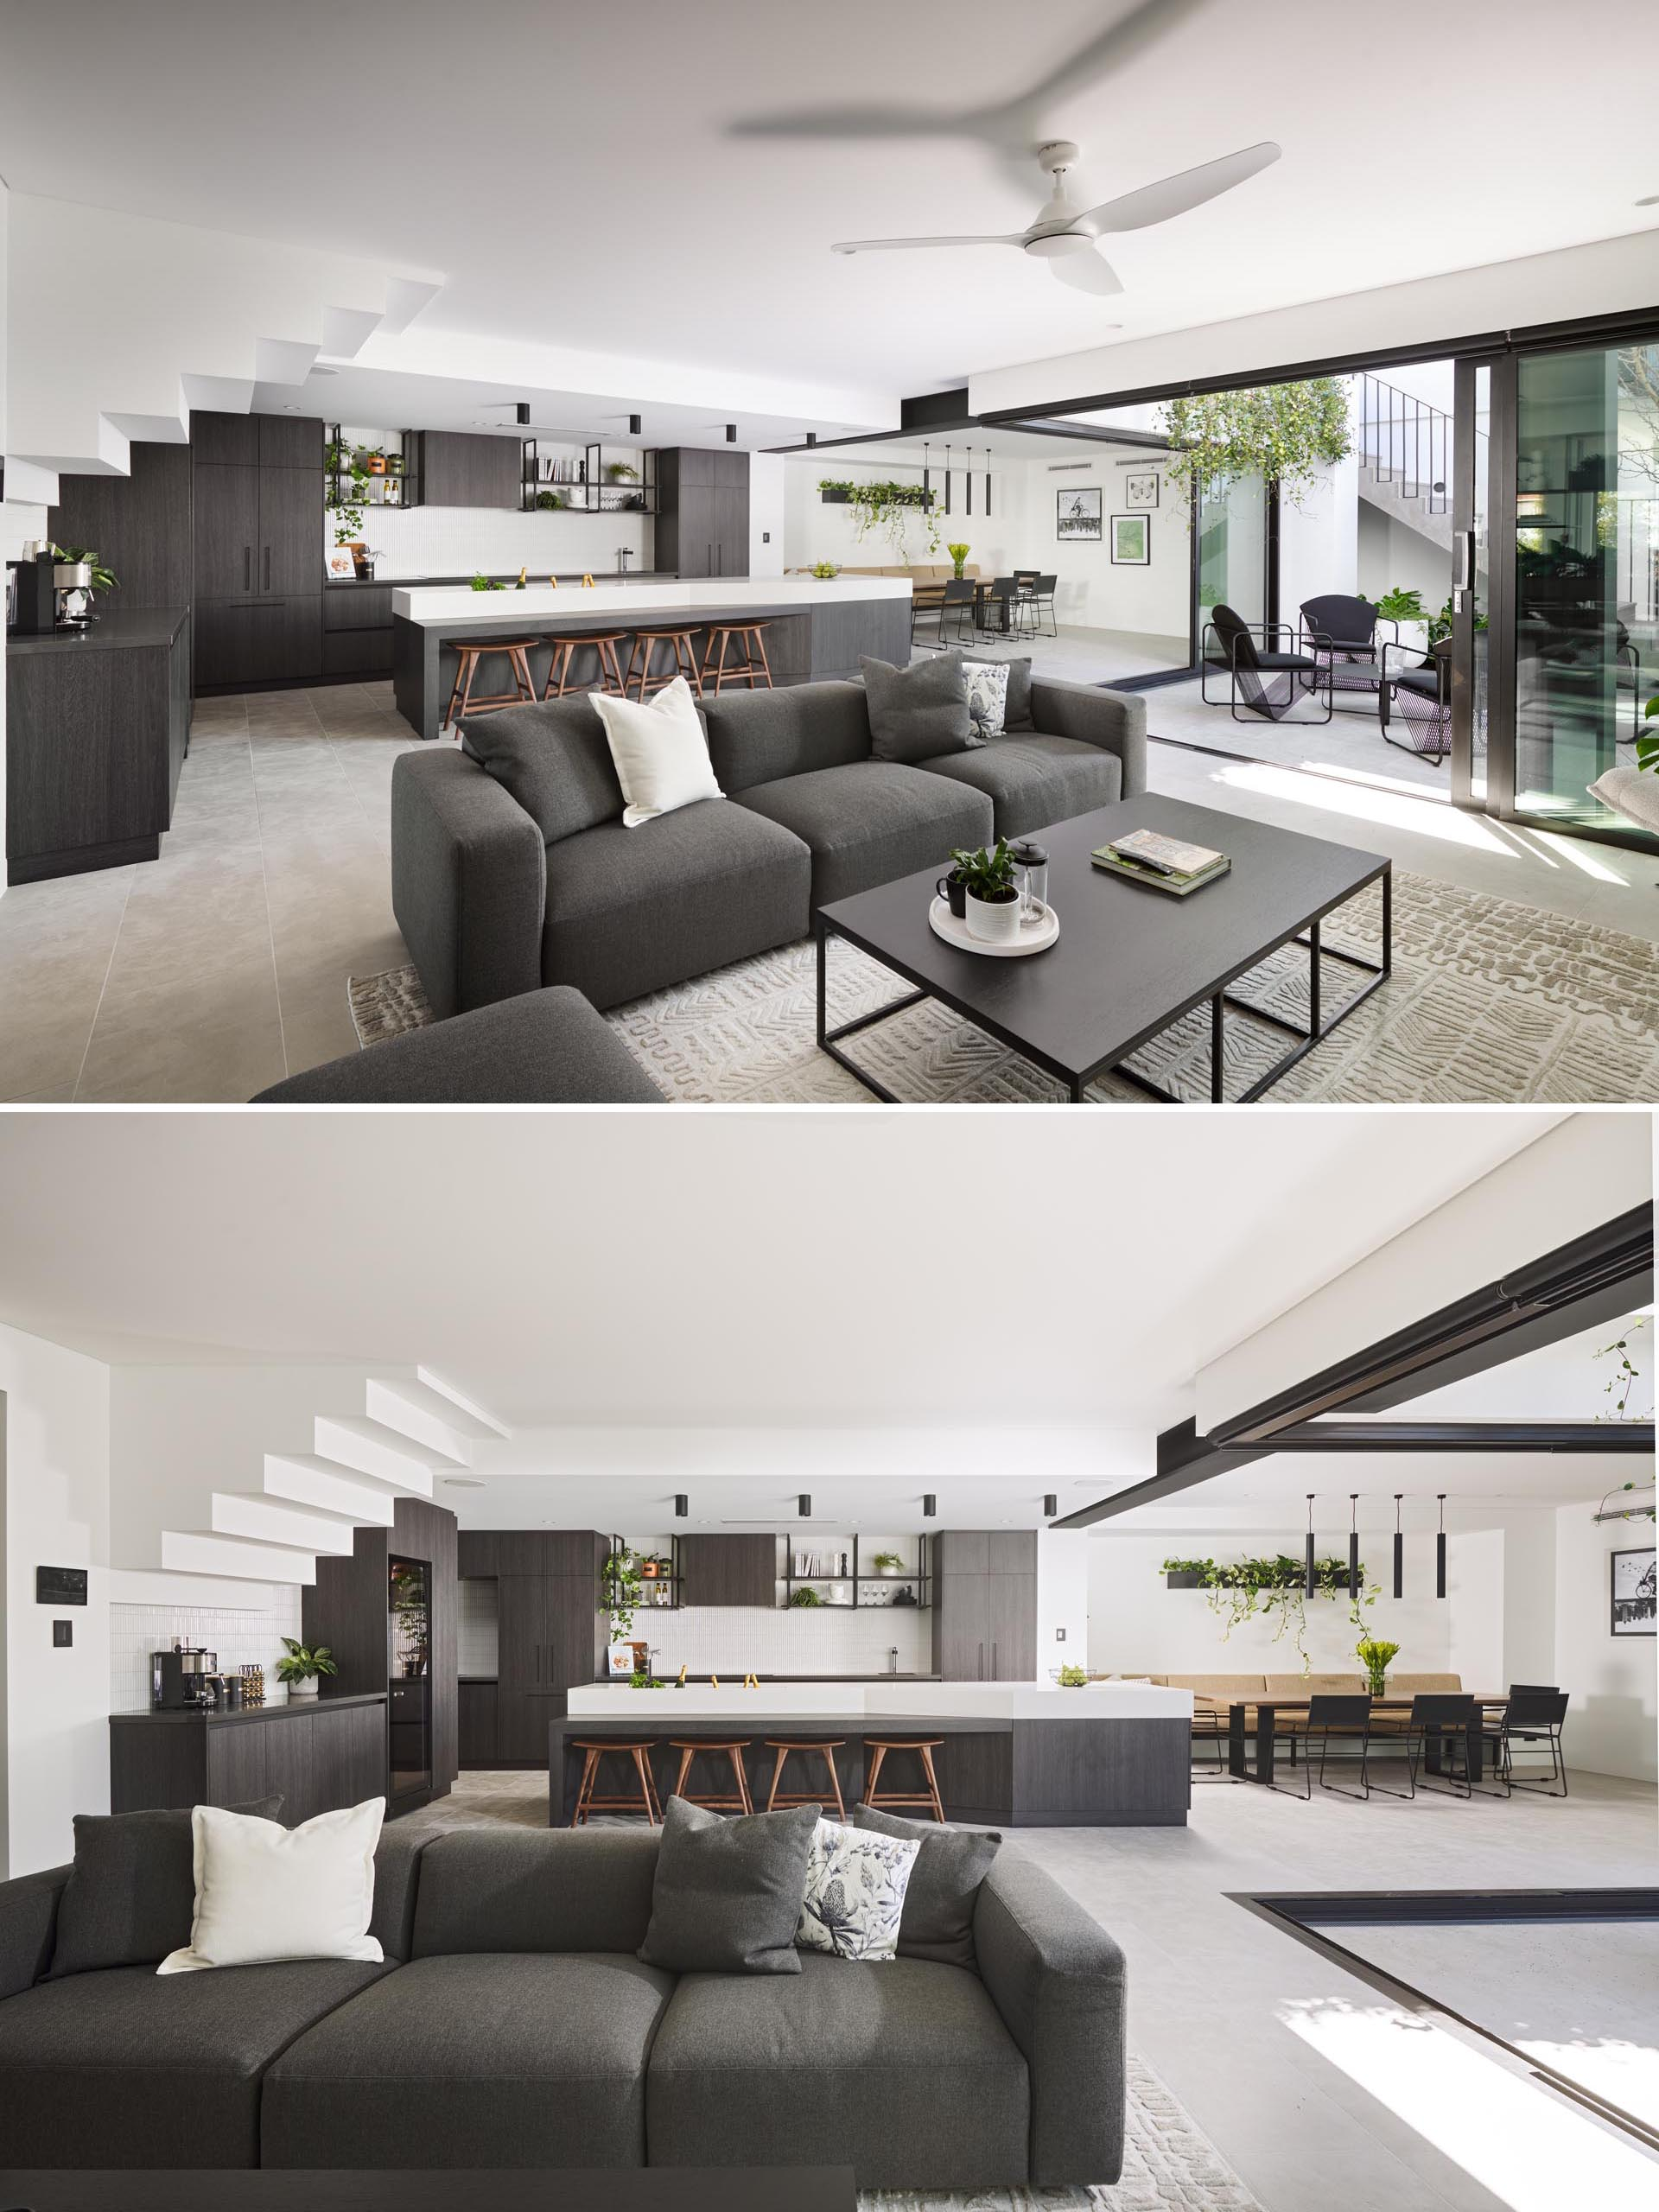 The main social areas of this modern have a color palette that includes grey tones that complement light walls and floors, and black accents.